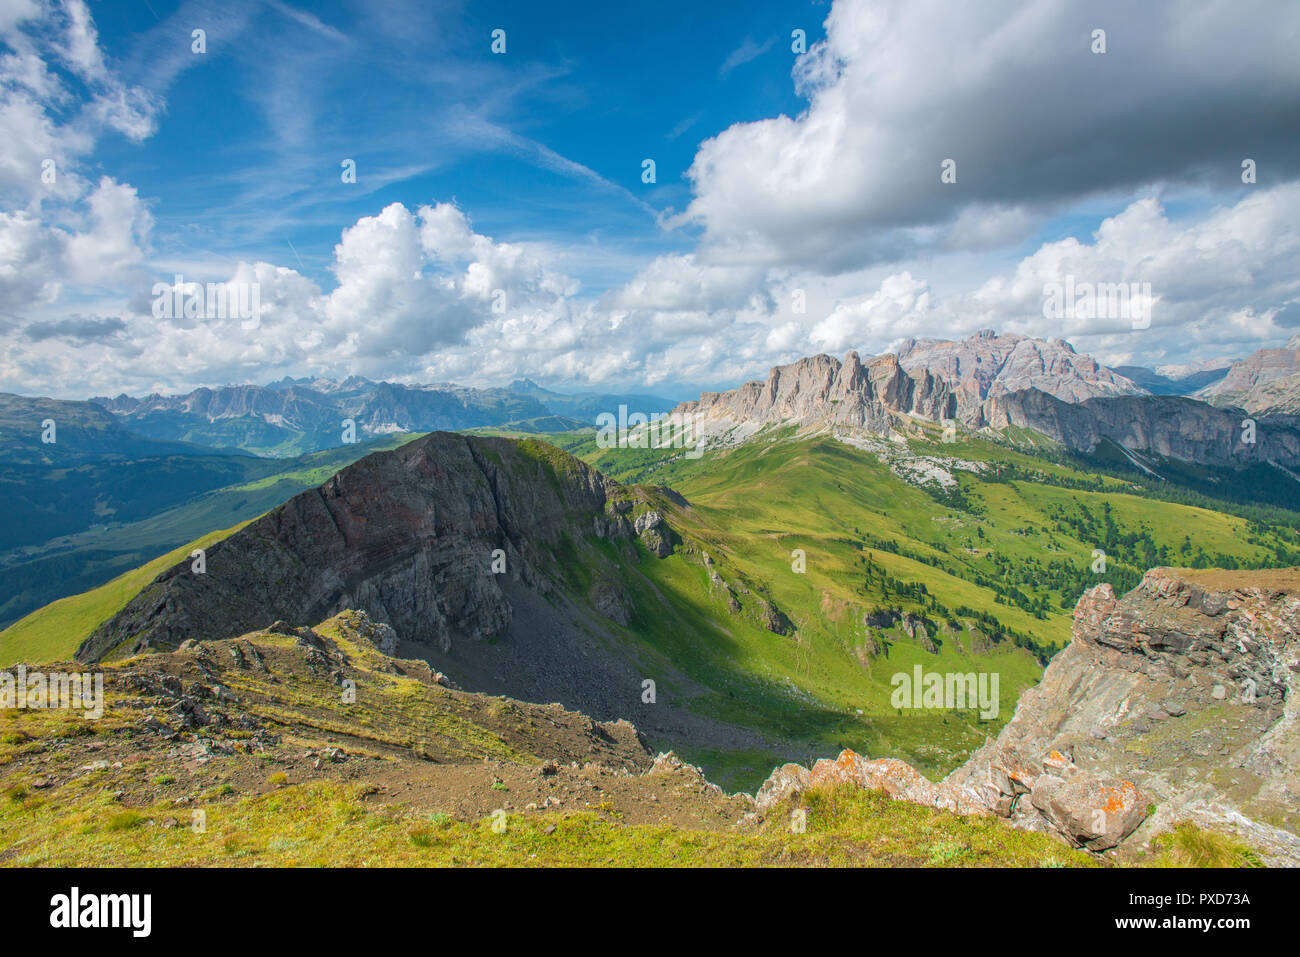 Beautiful view of Italian Dolomites mountainside in the summer. Sharp ridge, mountain wall, forested valleys and grassy pasture. Summit viewpoint. - Stock Image